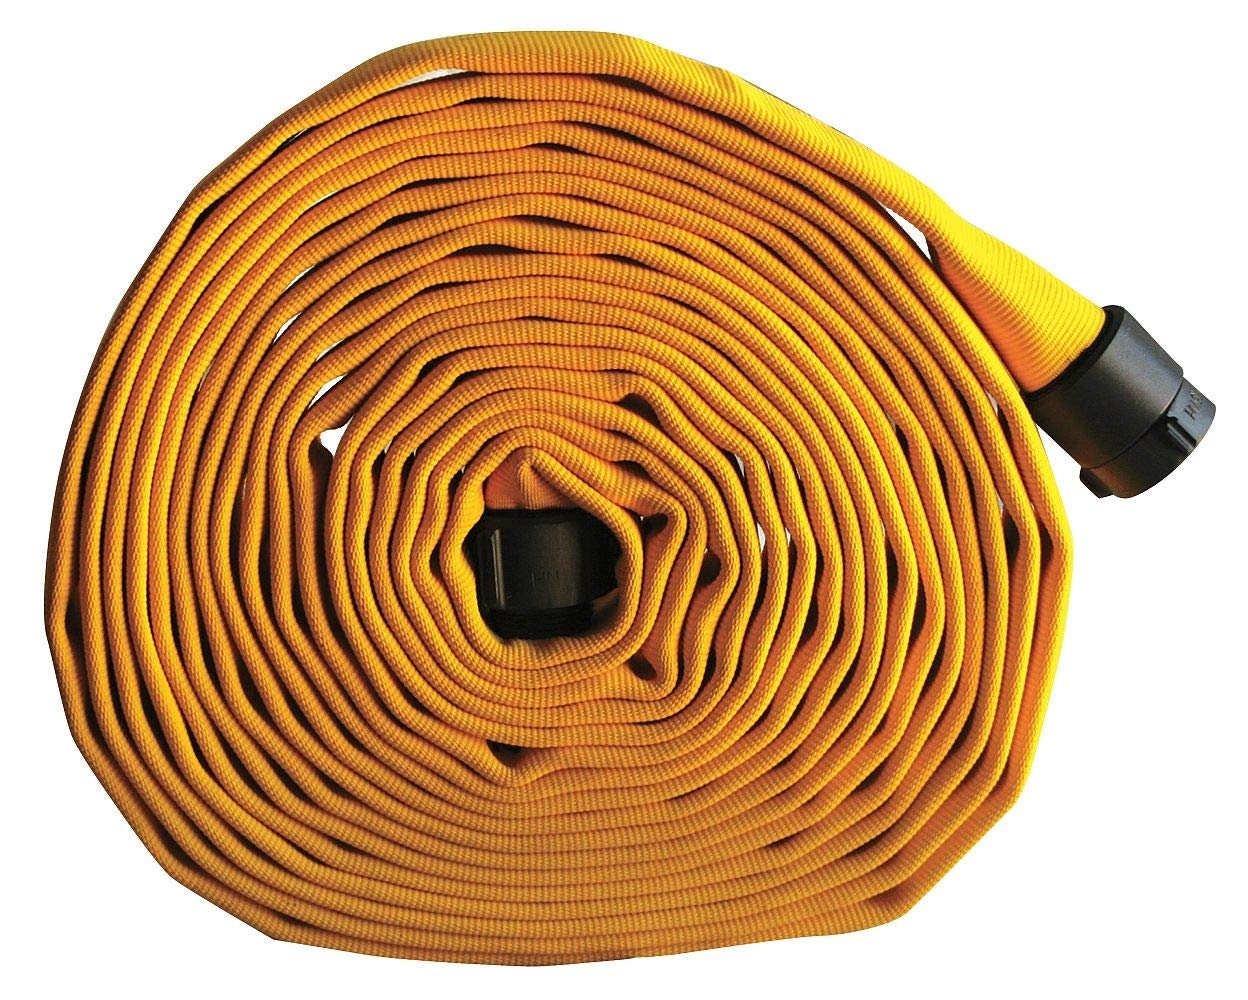 Armored Textiles Supply Line Fire Hose, Double Jacket, 3'' Hose Inside Dia, 50 ft, Yellow - G52H3HDY50N